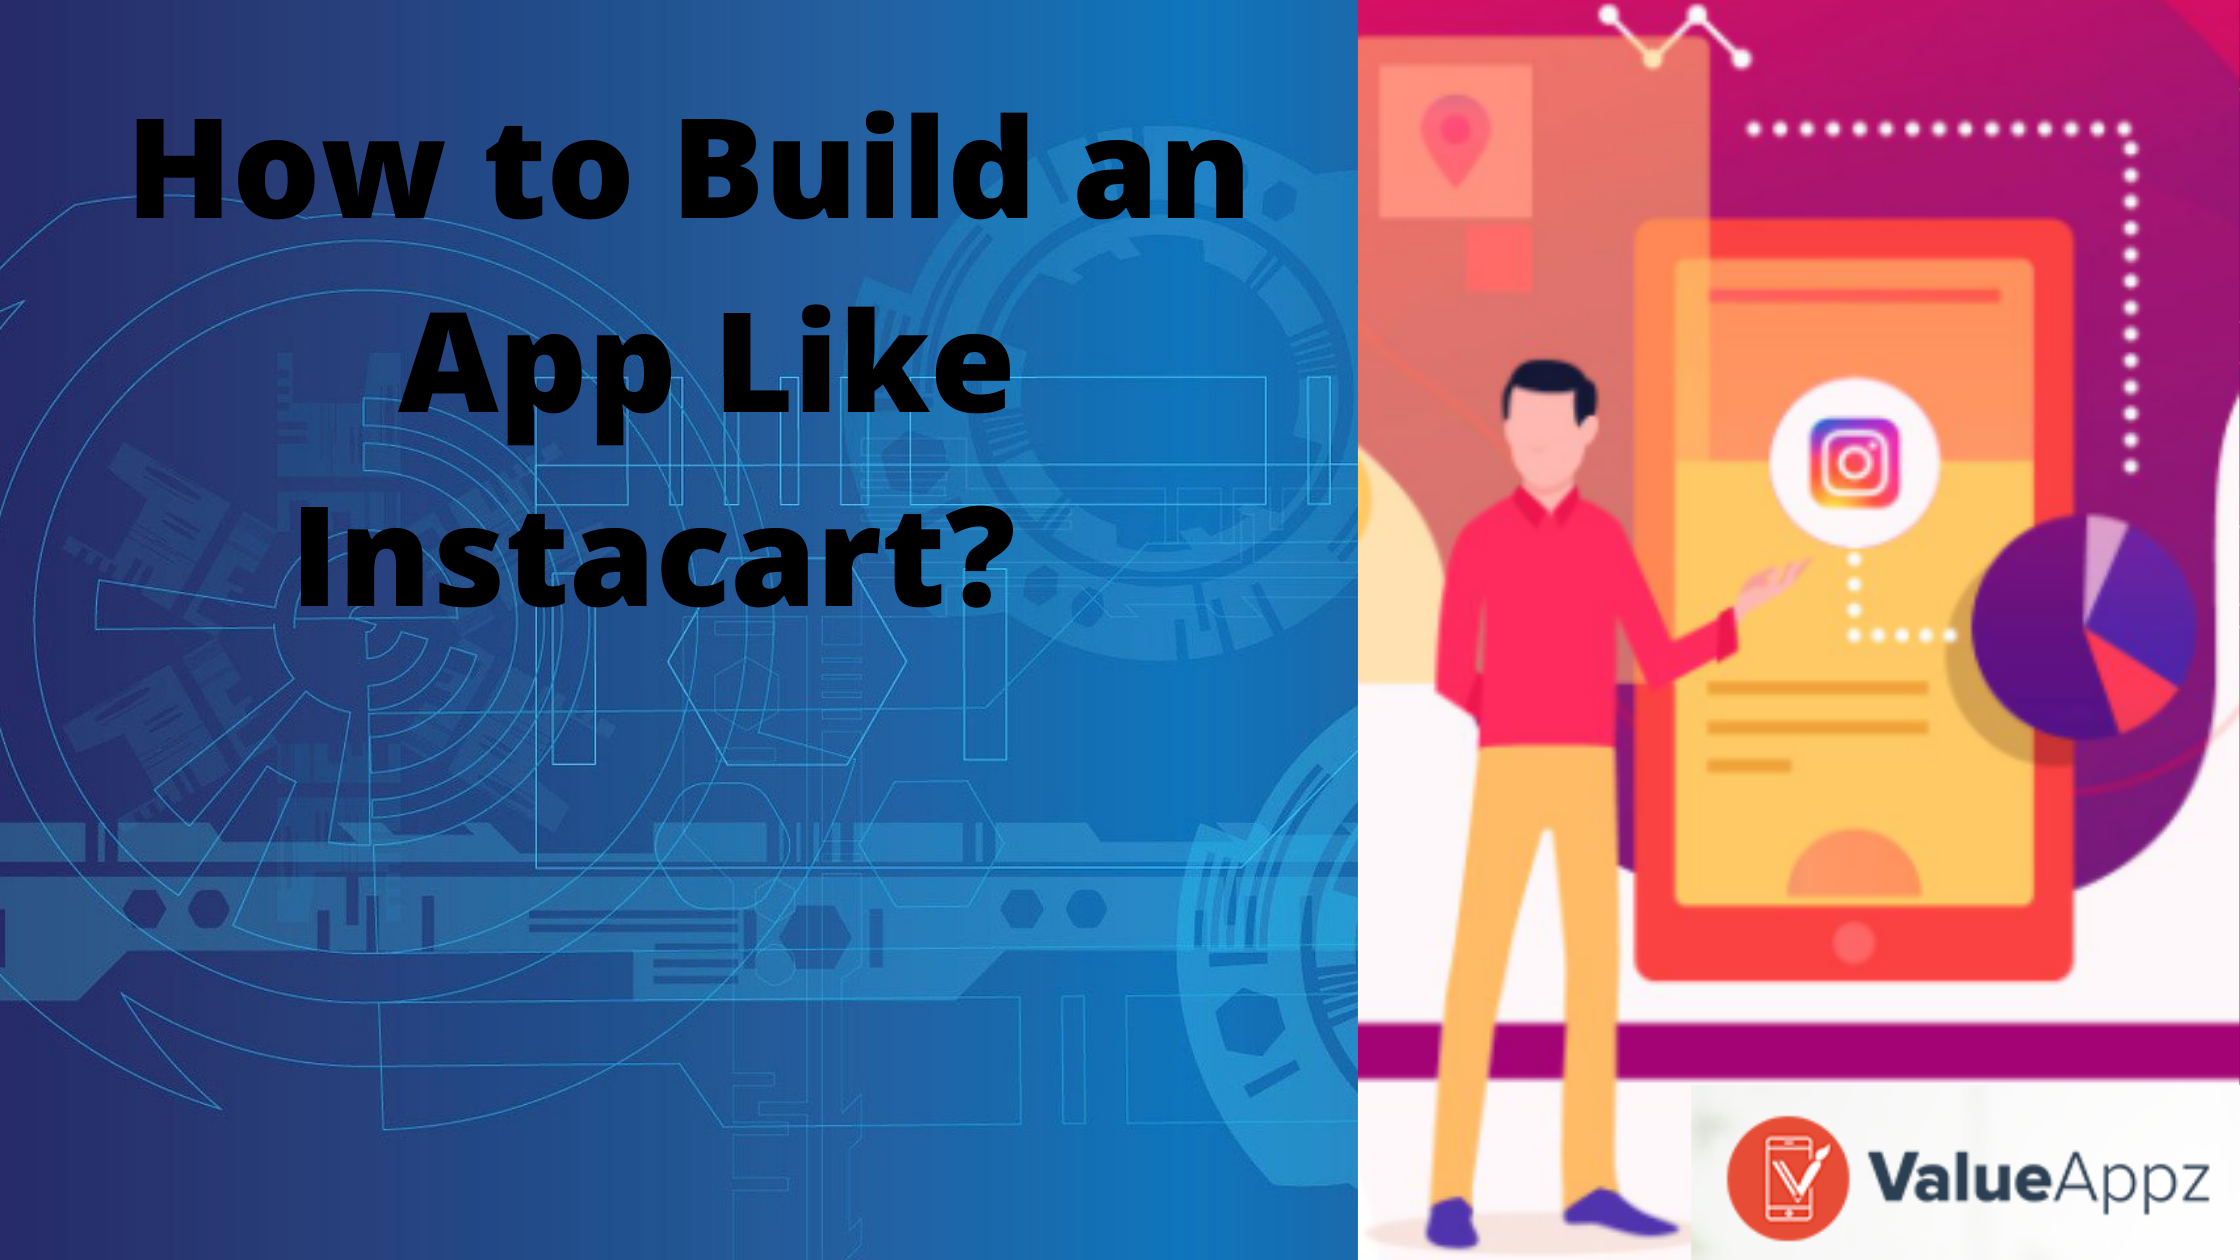 How to Build an App Like Instacart?